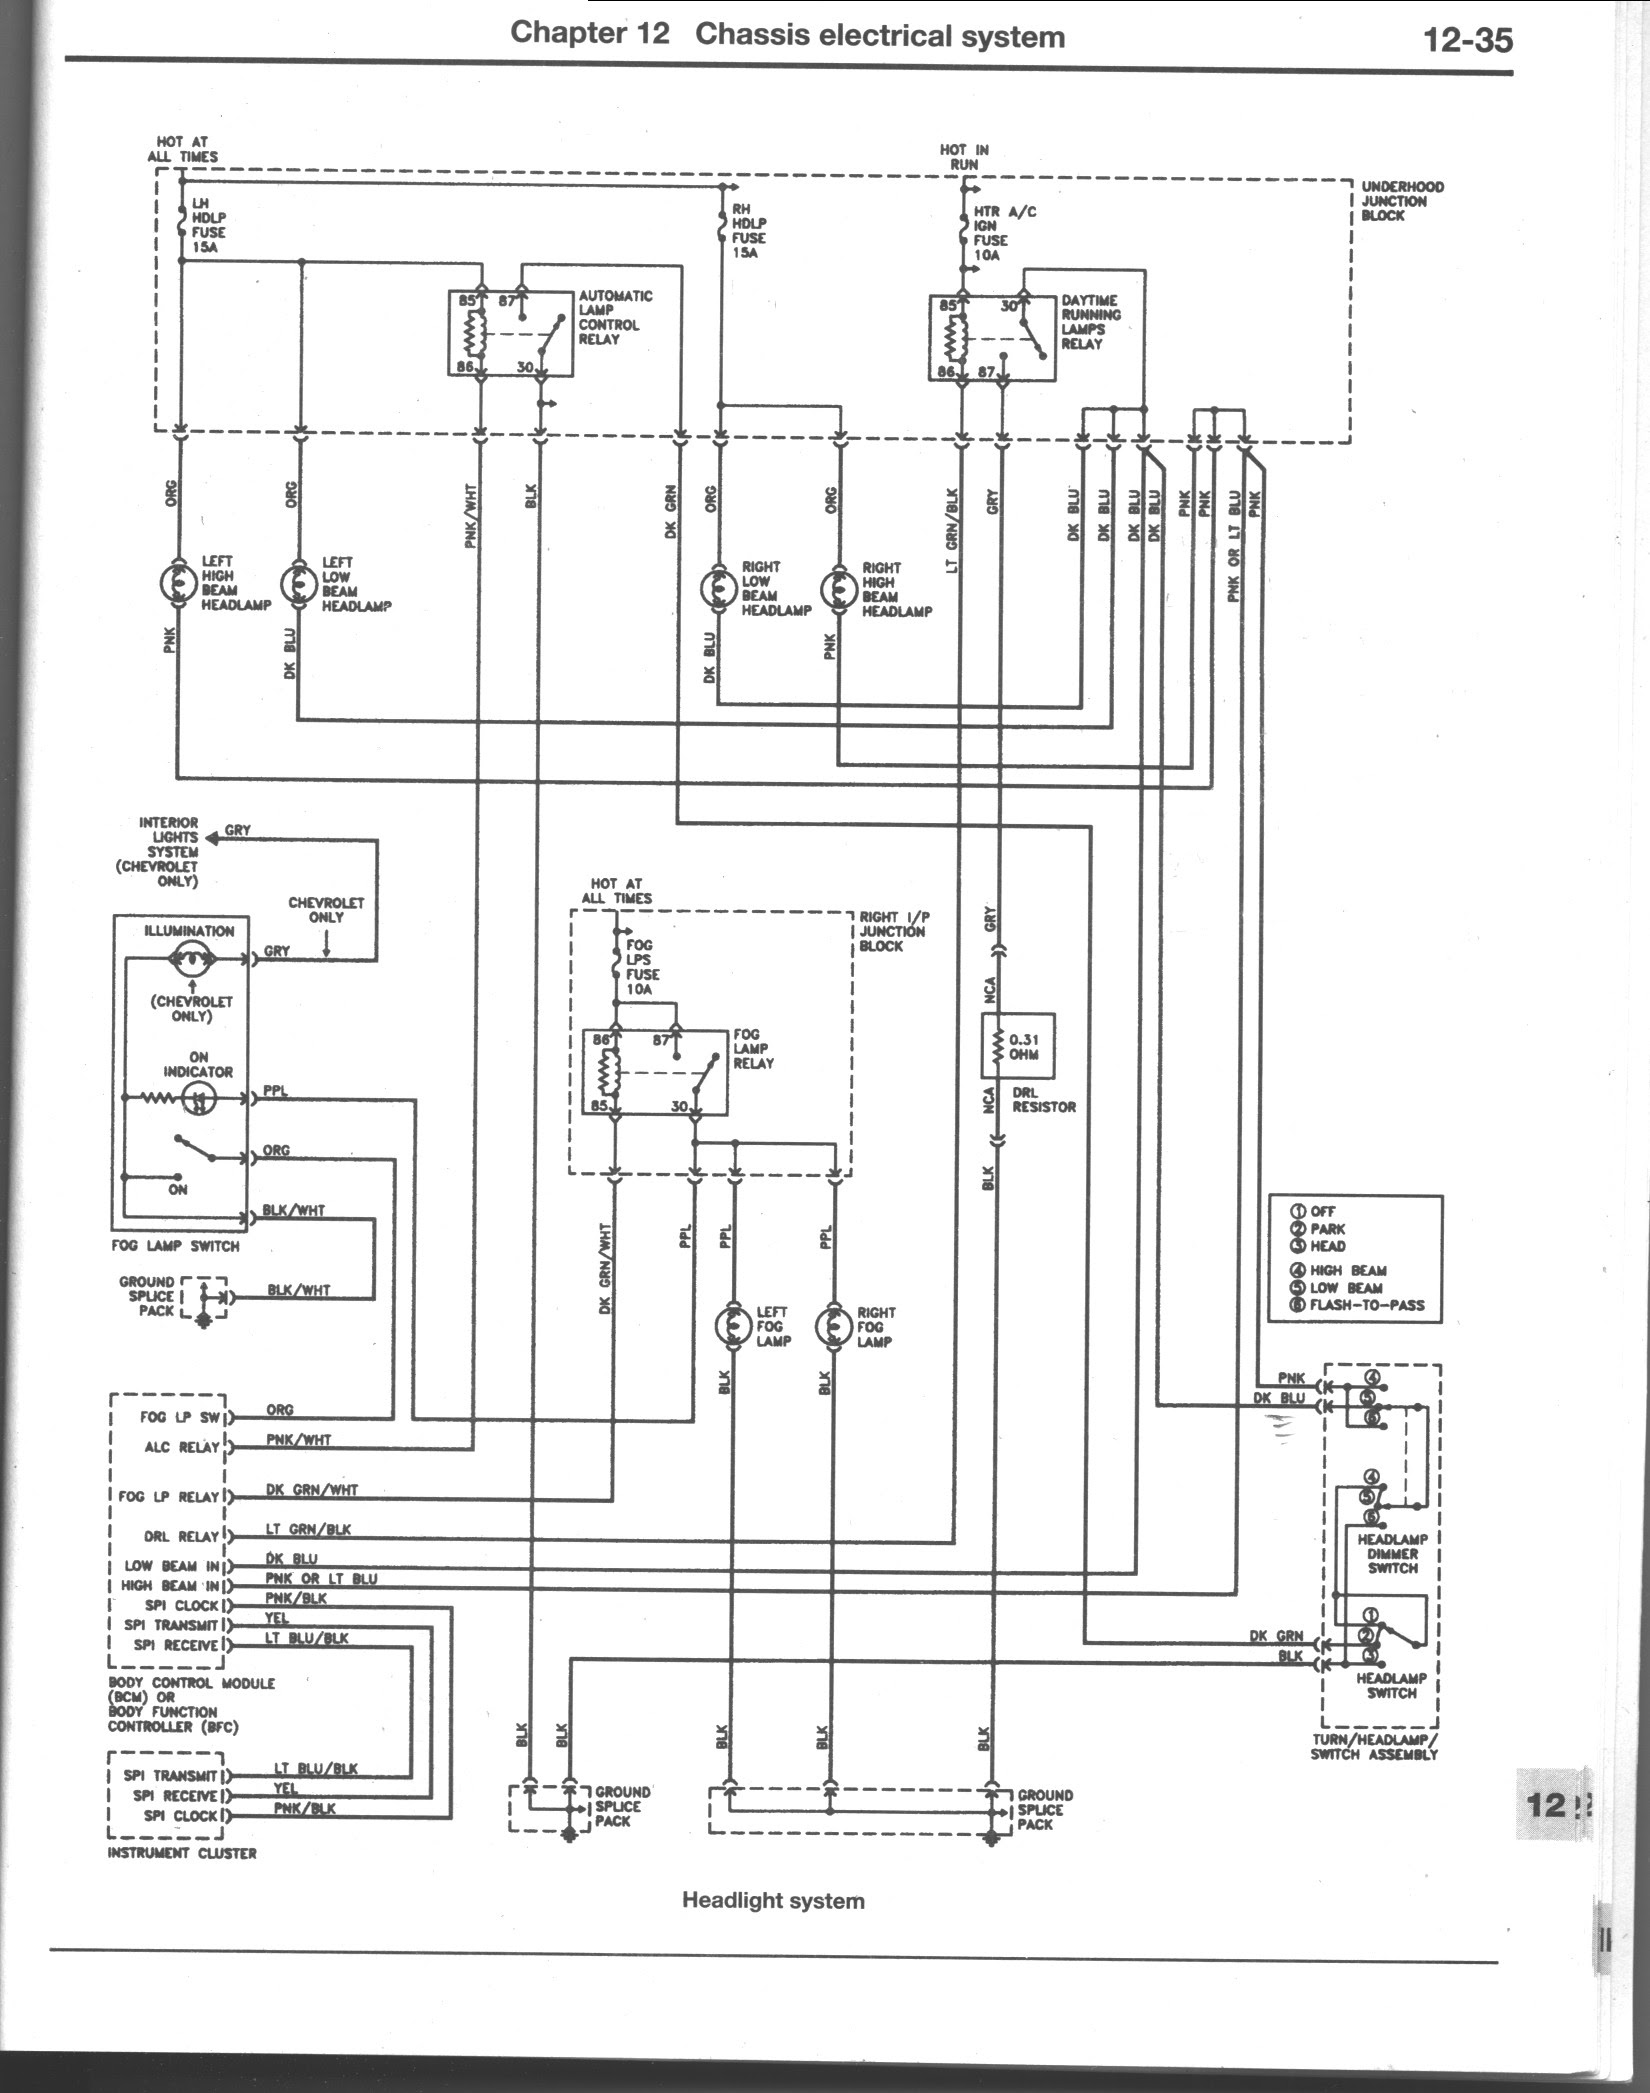 2008 Chevy Malibu Headlight Wiring Diagram Wiring Diagrams Data Www Www Ungiaggioloincucina It